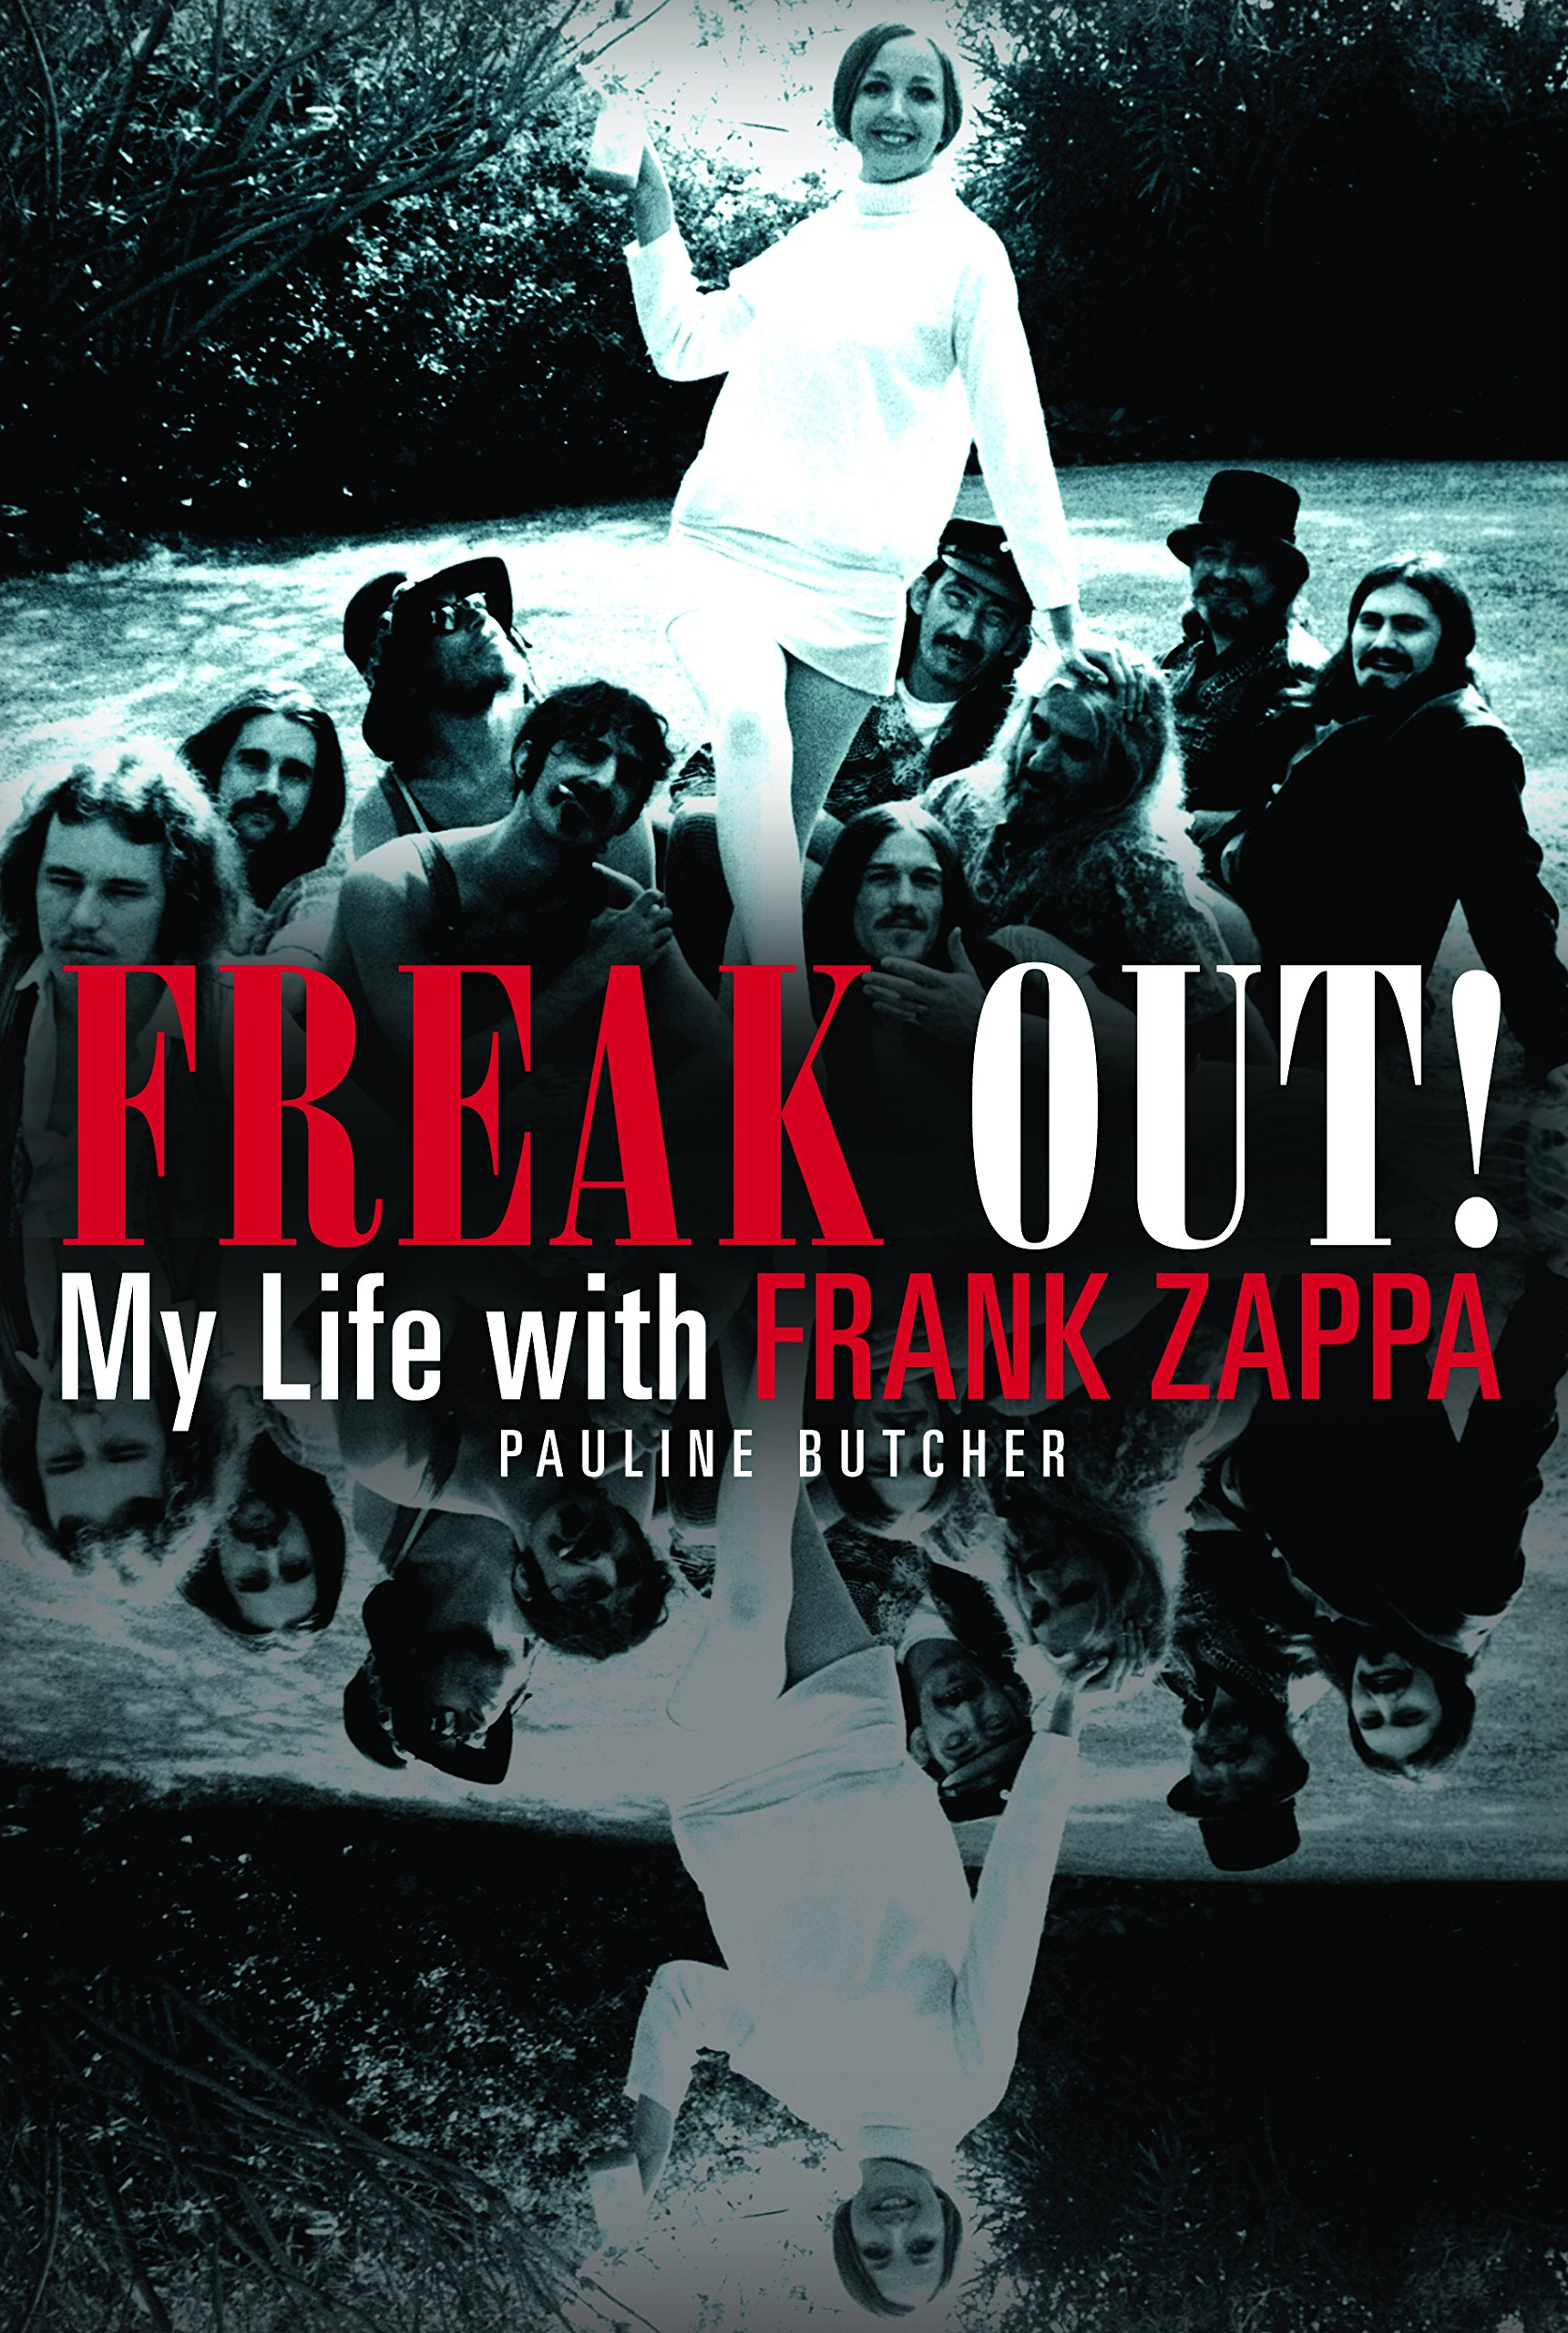 Freak Out My Life With Frank Zappa Pauline Butcher 9780859654791